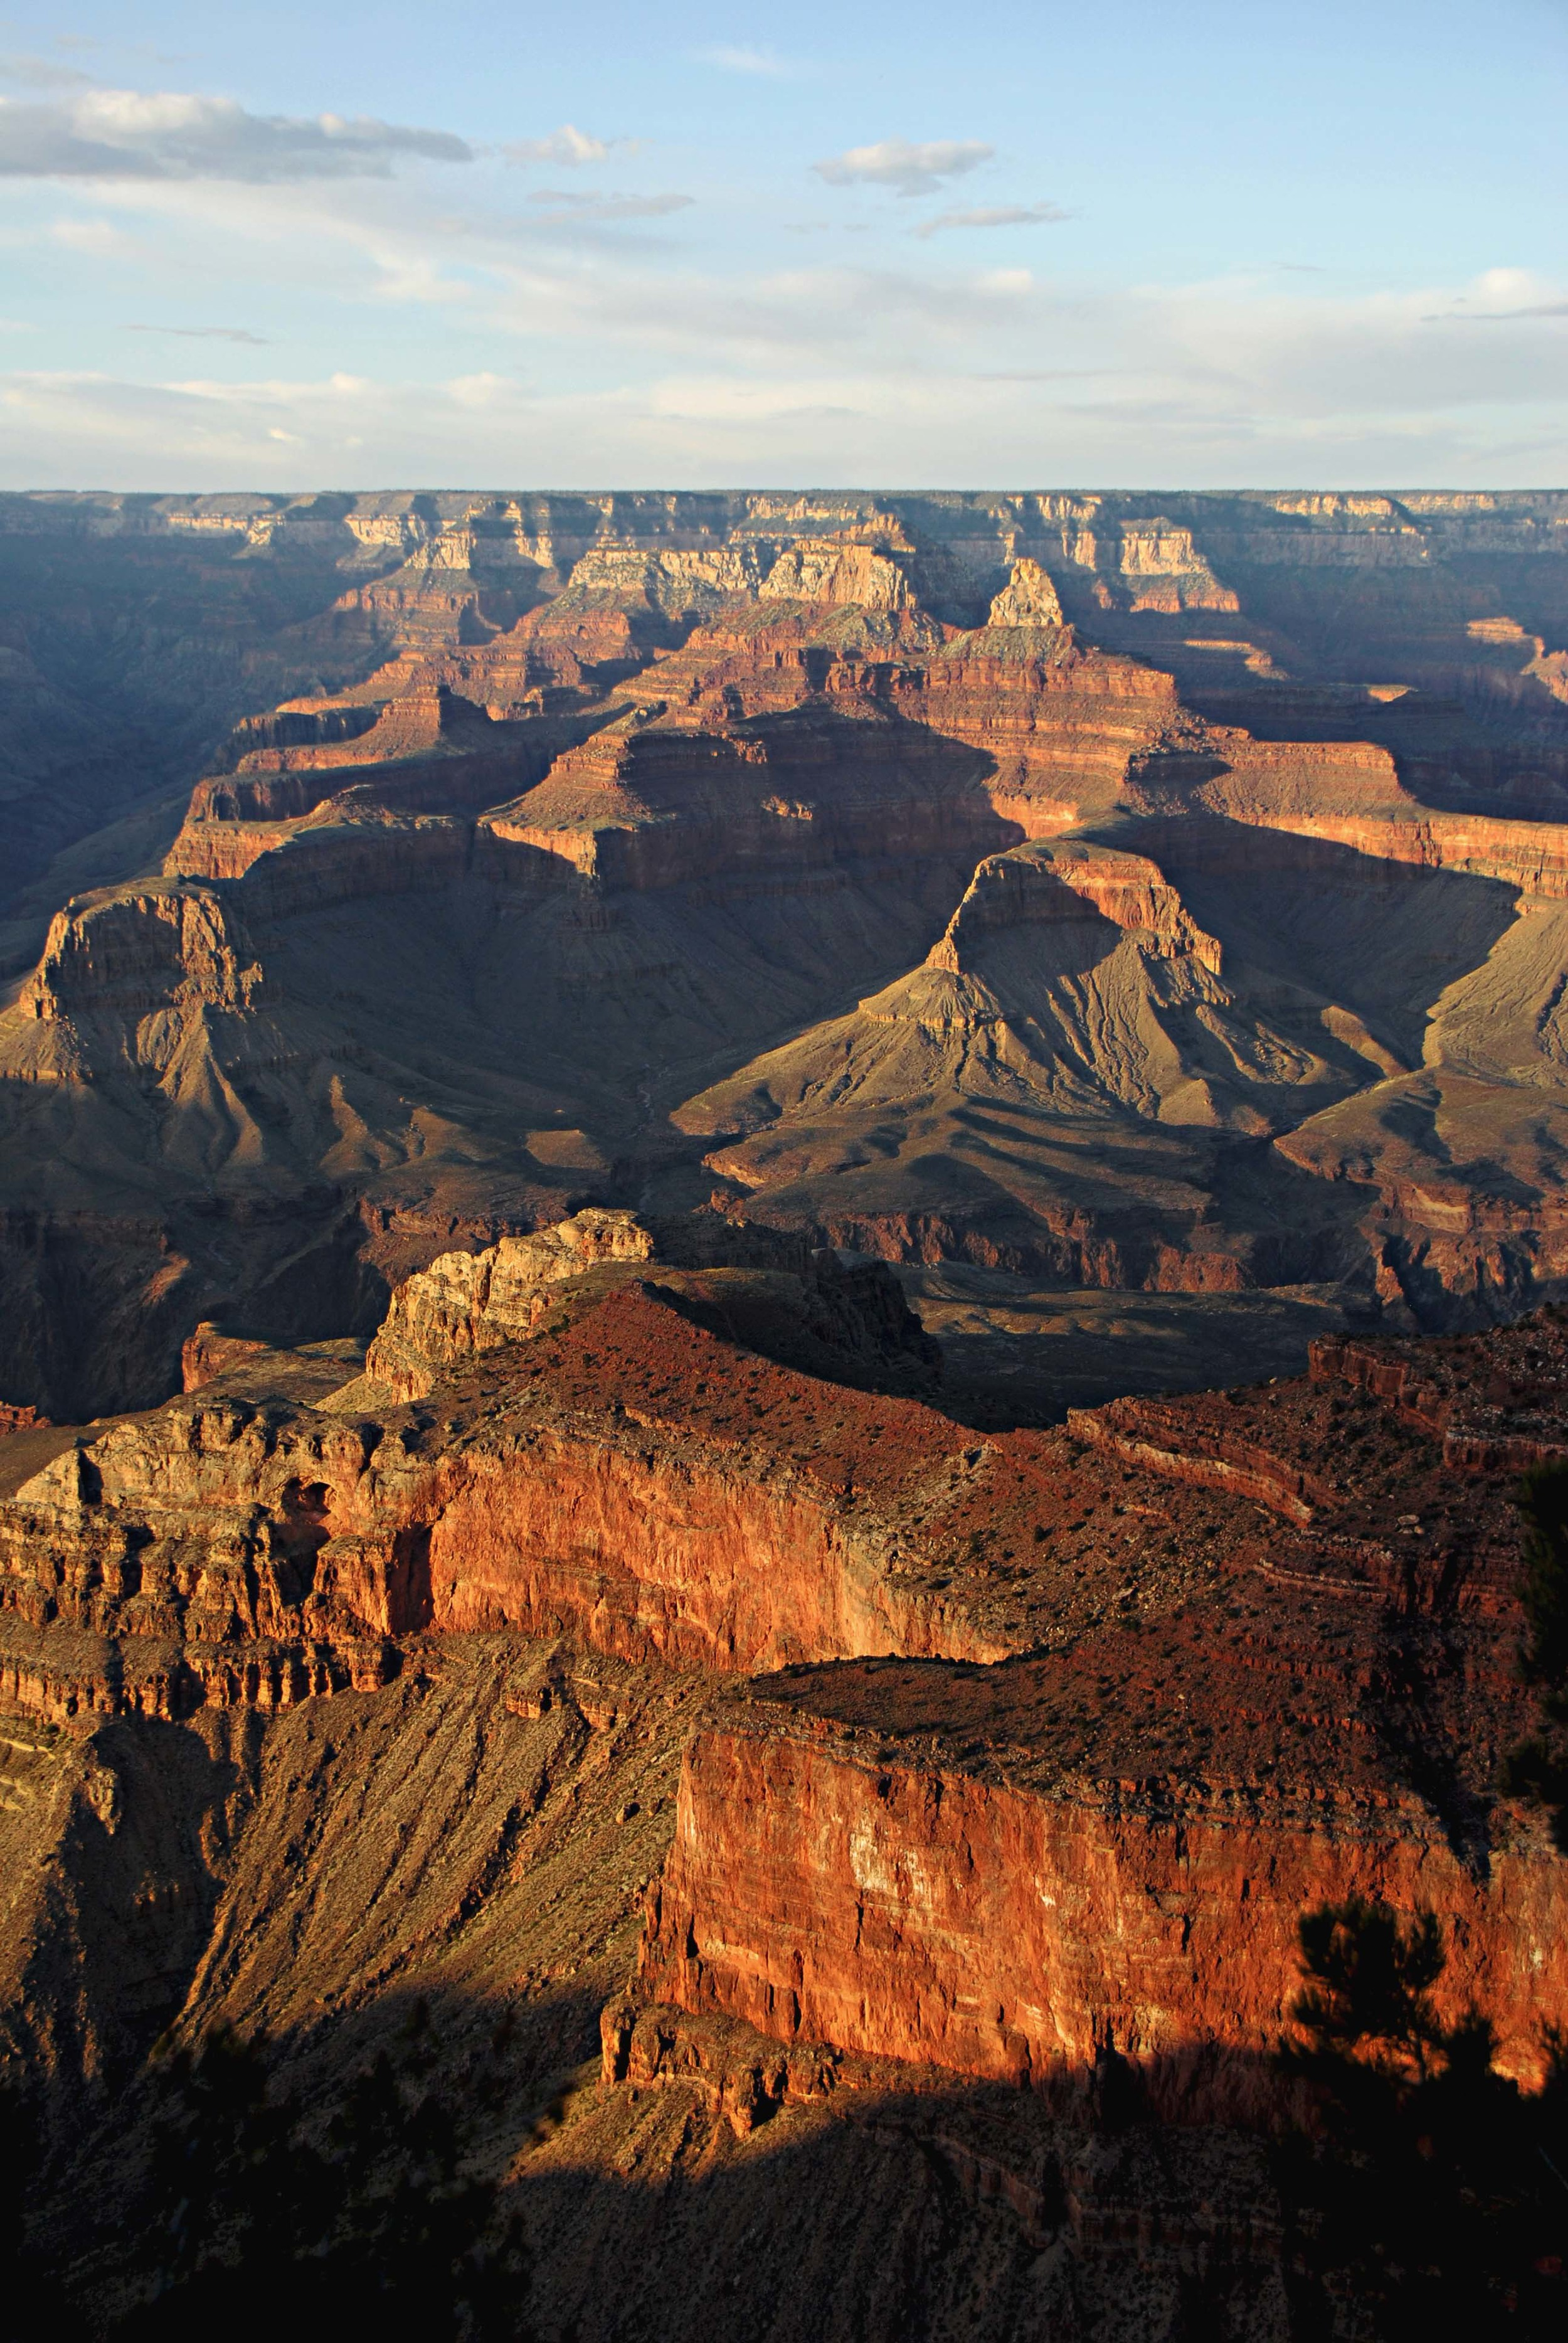 The Grand Canyon and Colorado River at sunset.